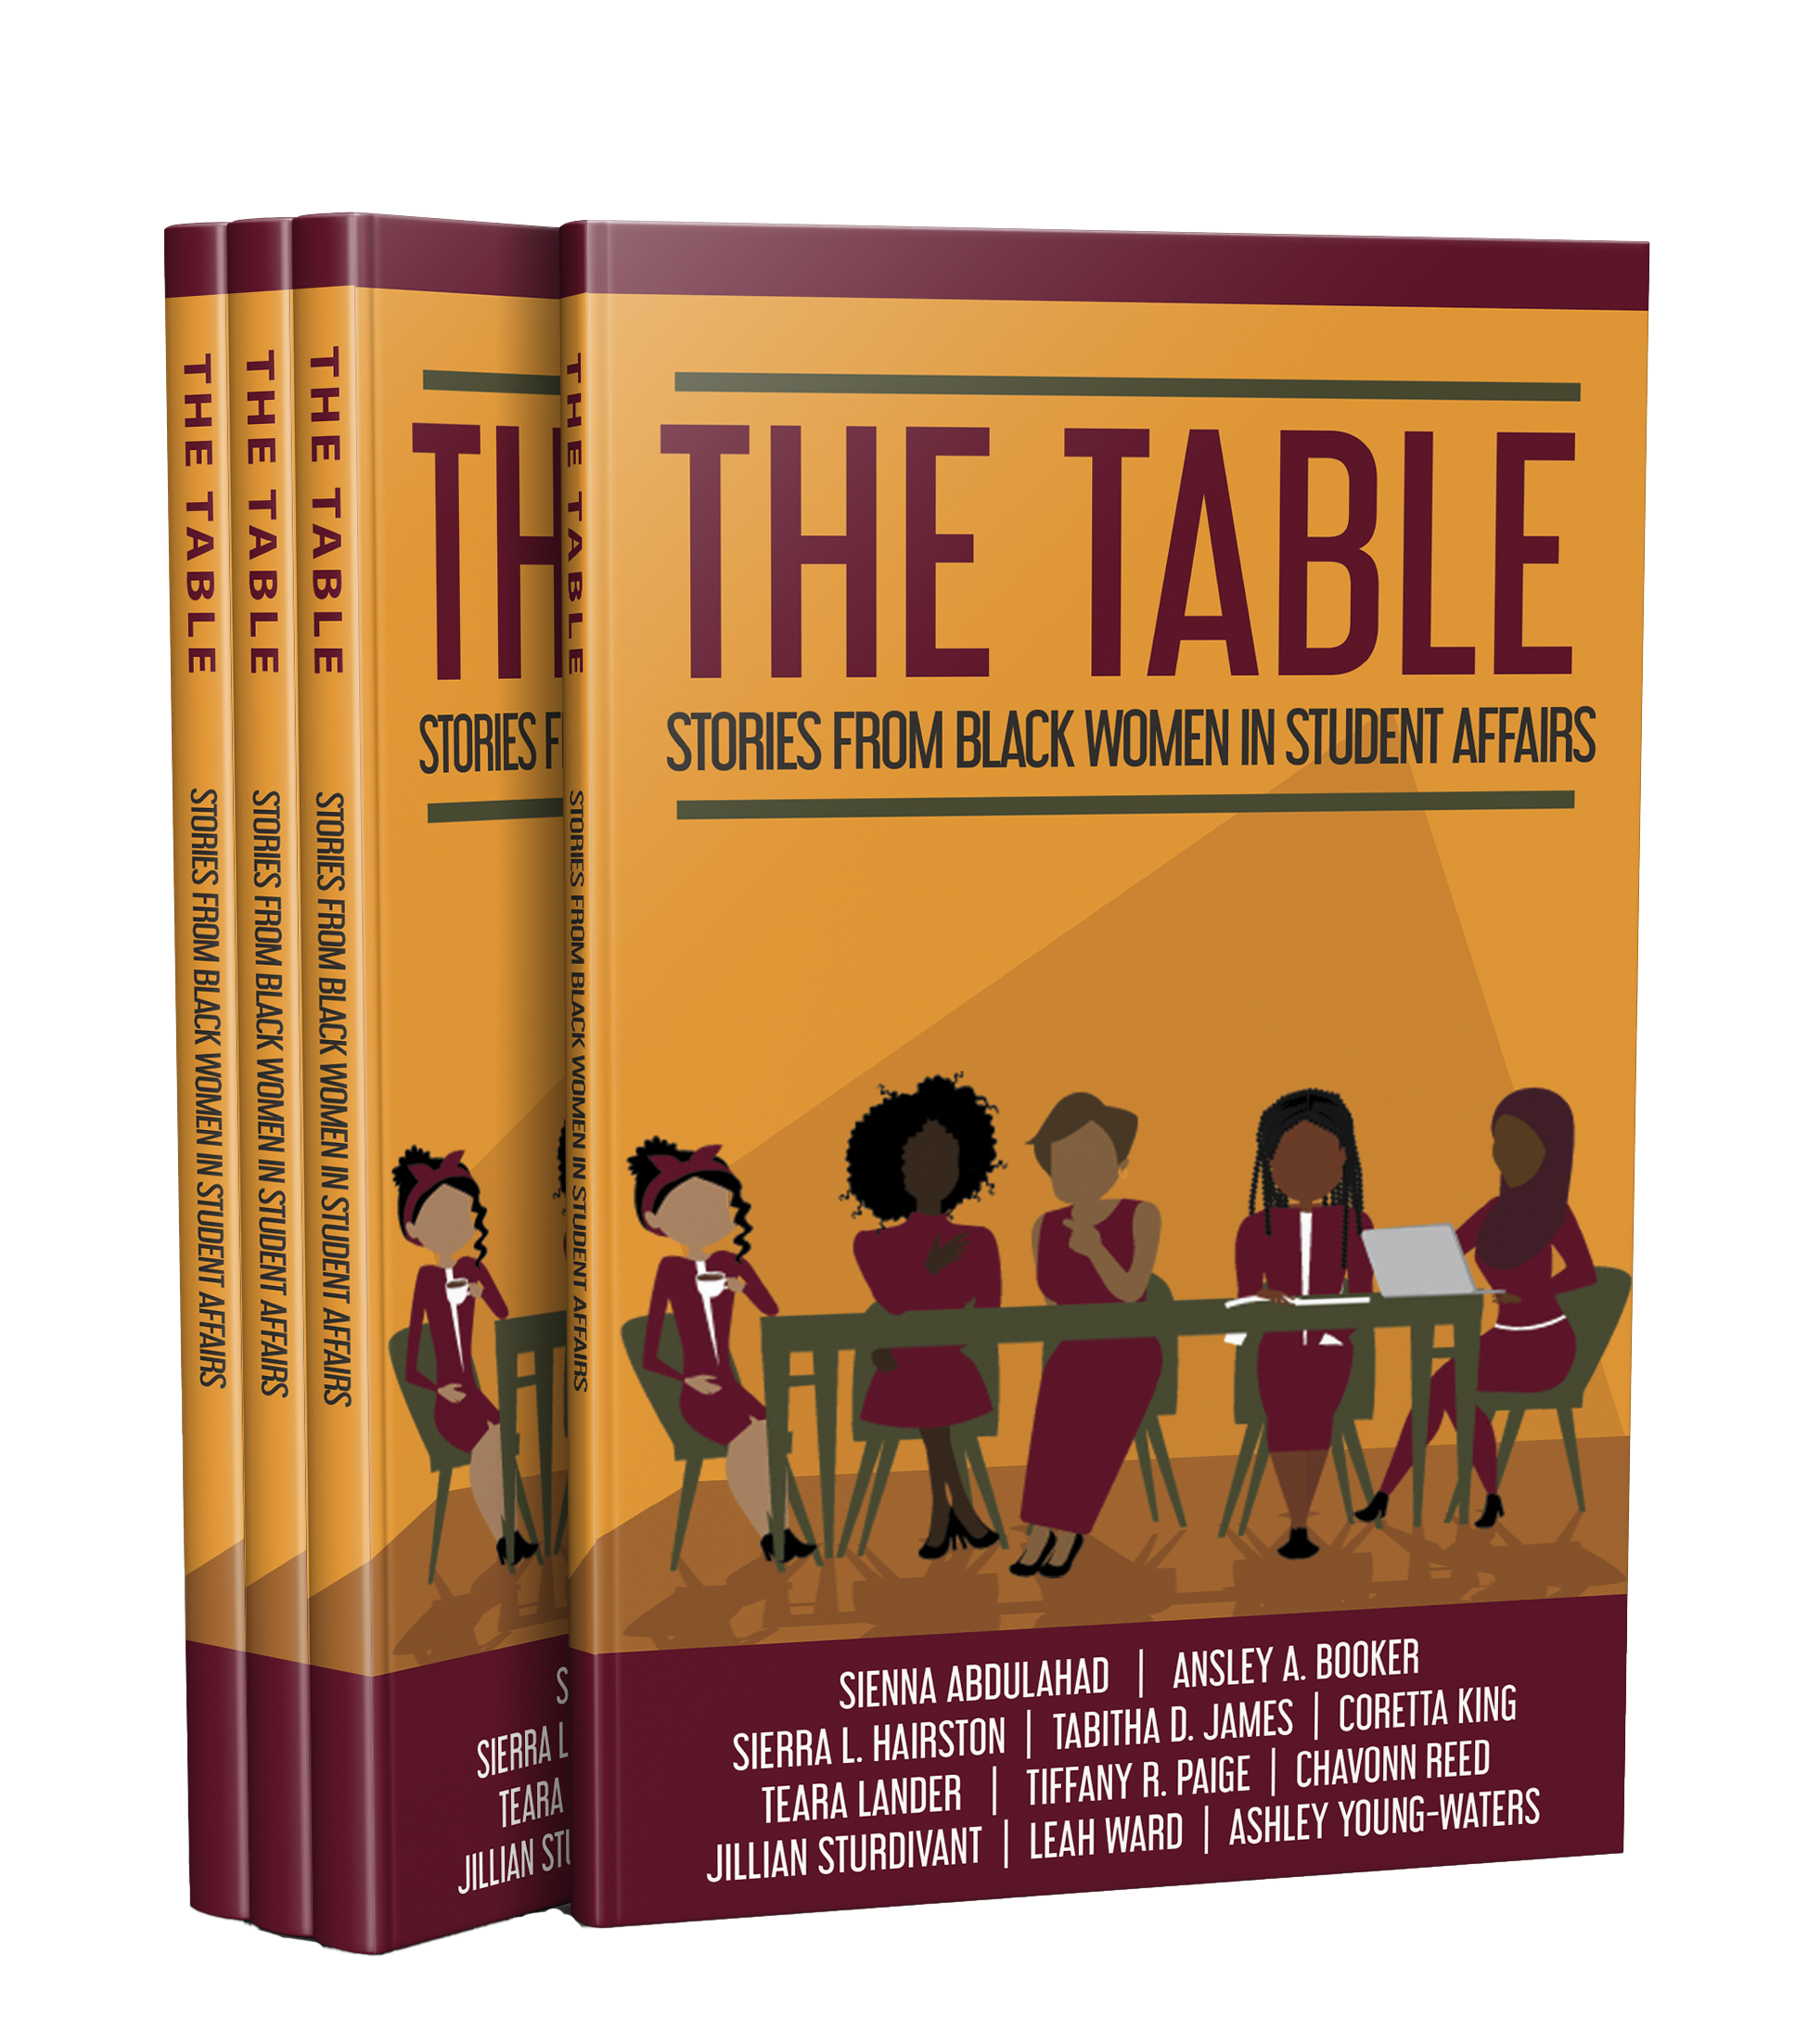 Have a seat… - Purchasing your copy of The Table from The Table Books Company helps to fund future projects (like a second book) and provides opportunities for us to give back to Black women in the student affairs/higher education field.